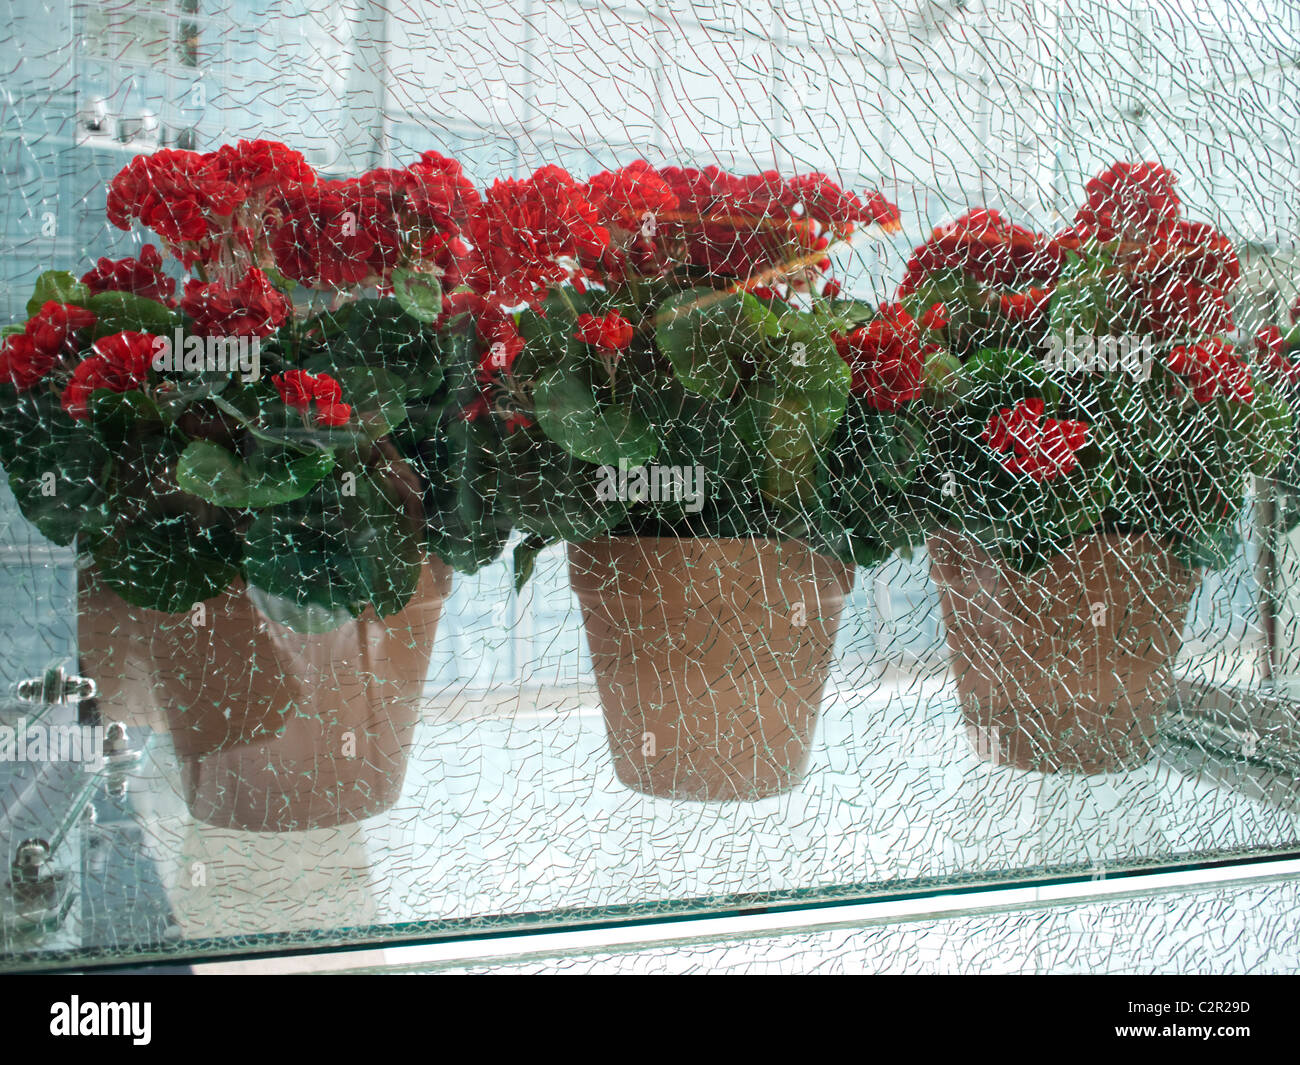 Cracked Glass With Geraniums - Stock Image